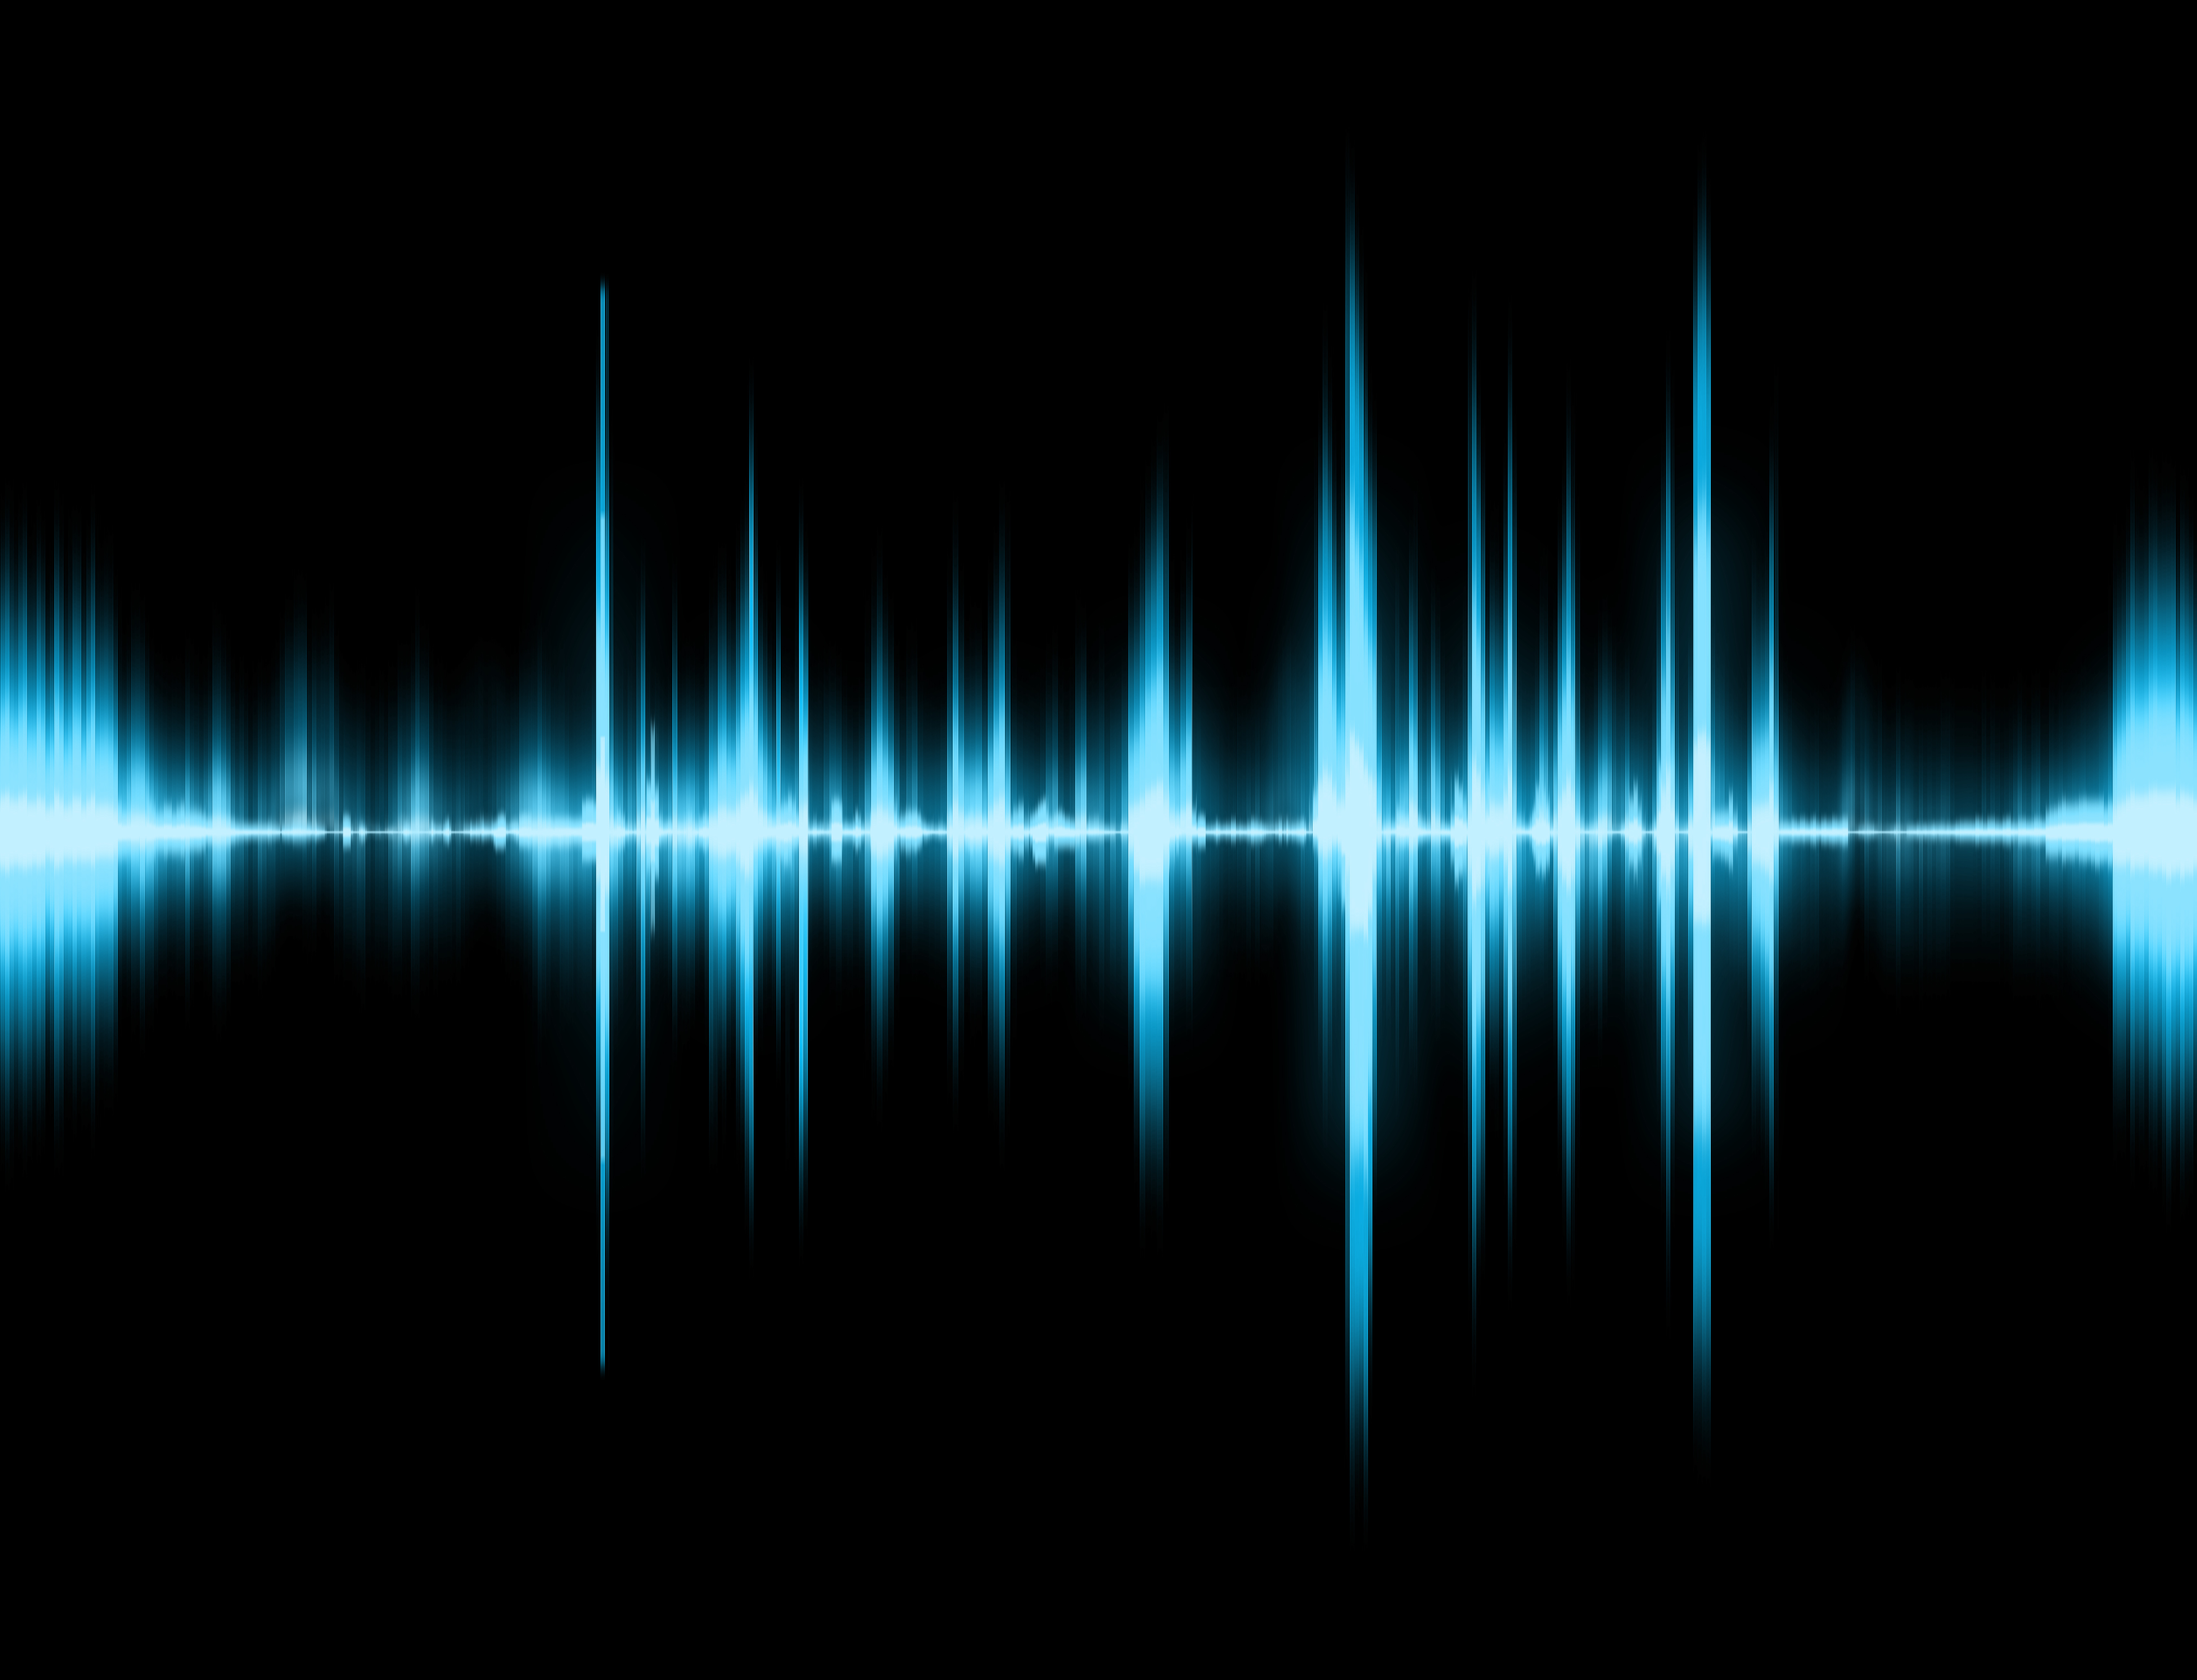 Sound effects wave visualisation image